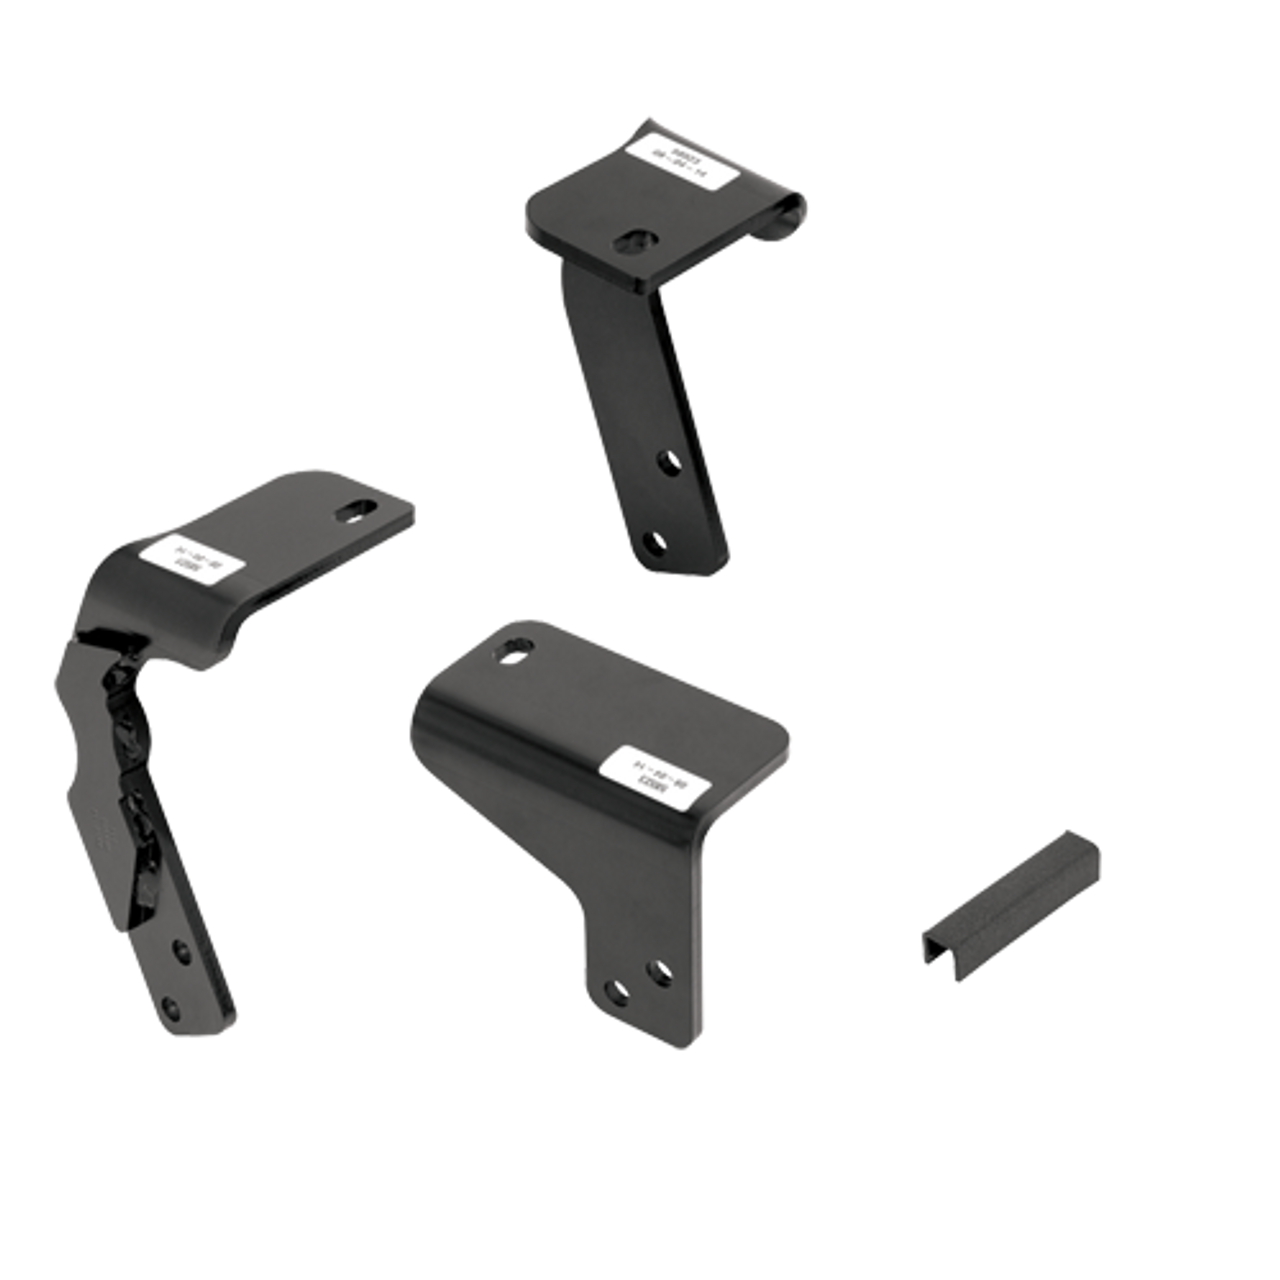 58523 --- Fifth Wheel Trailer Hitch Bracket Kit for 2014-2019 Dodge Ram - Required Kit for Installation